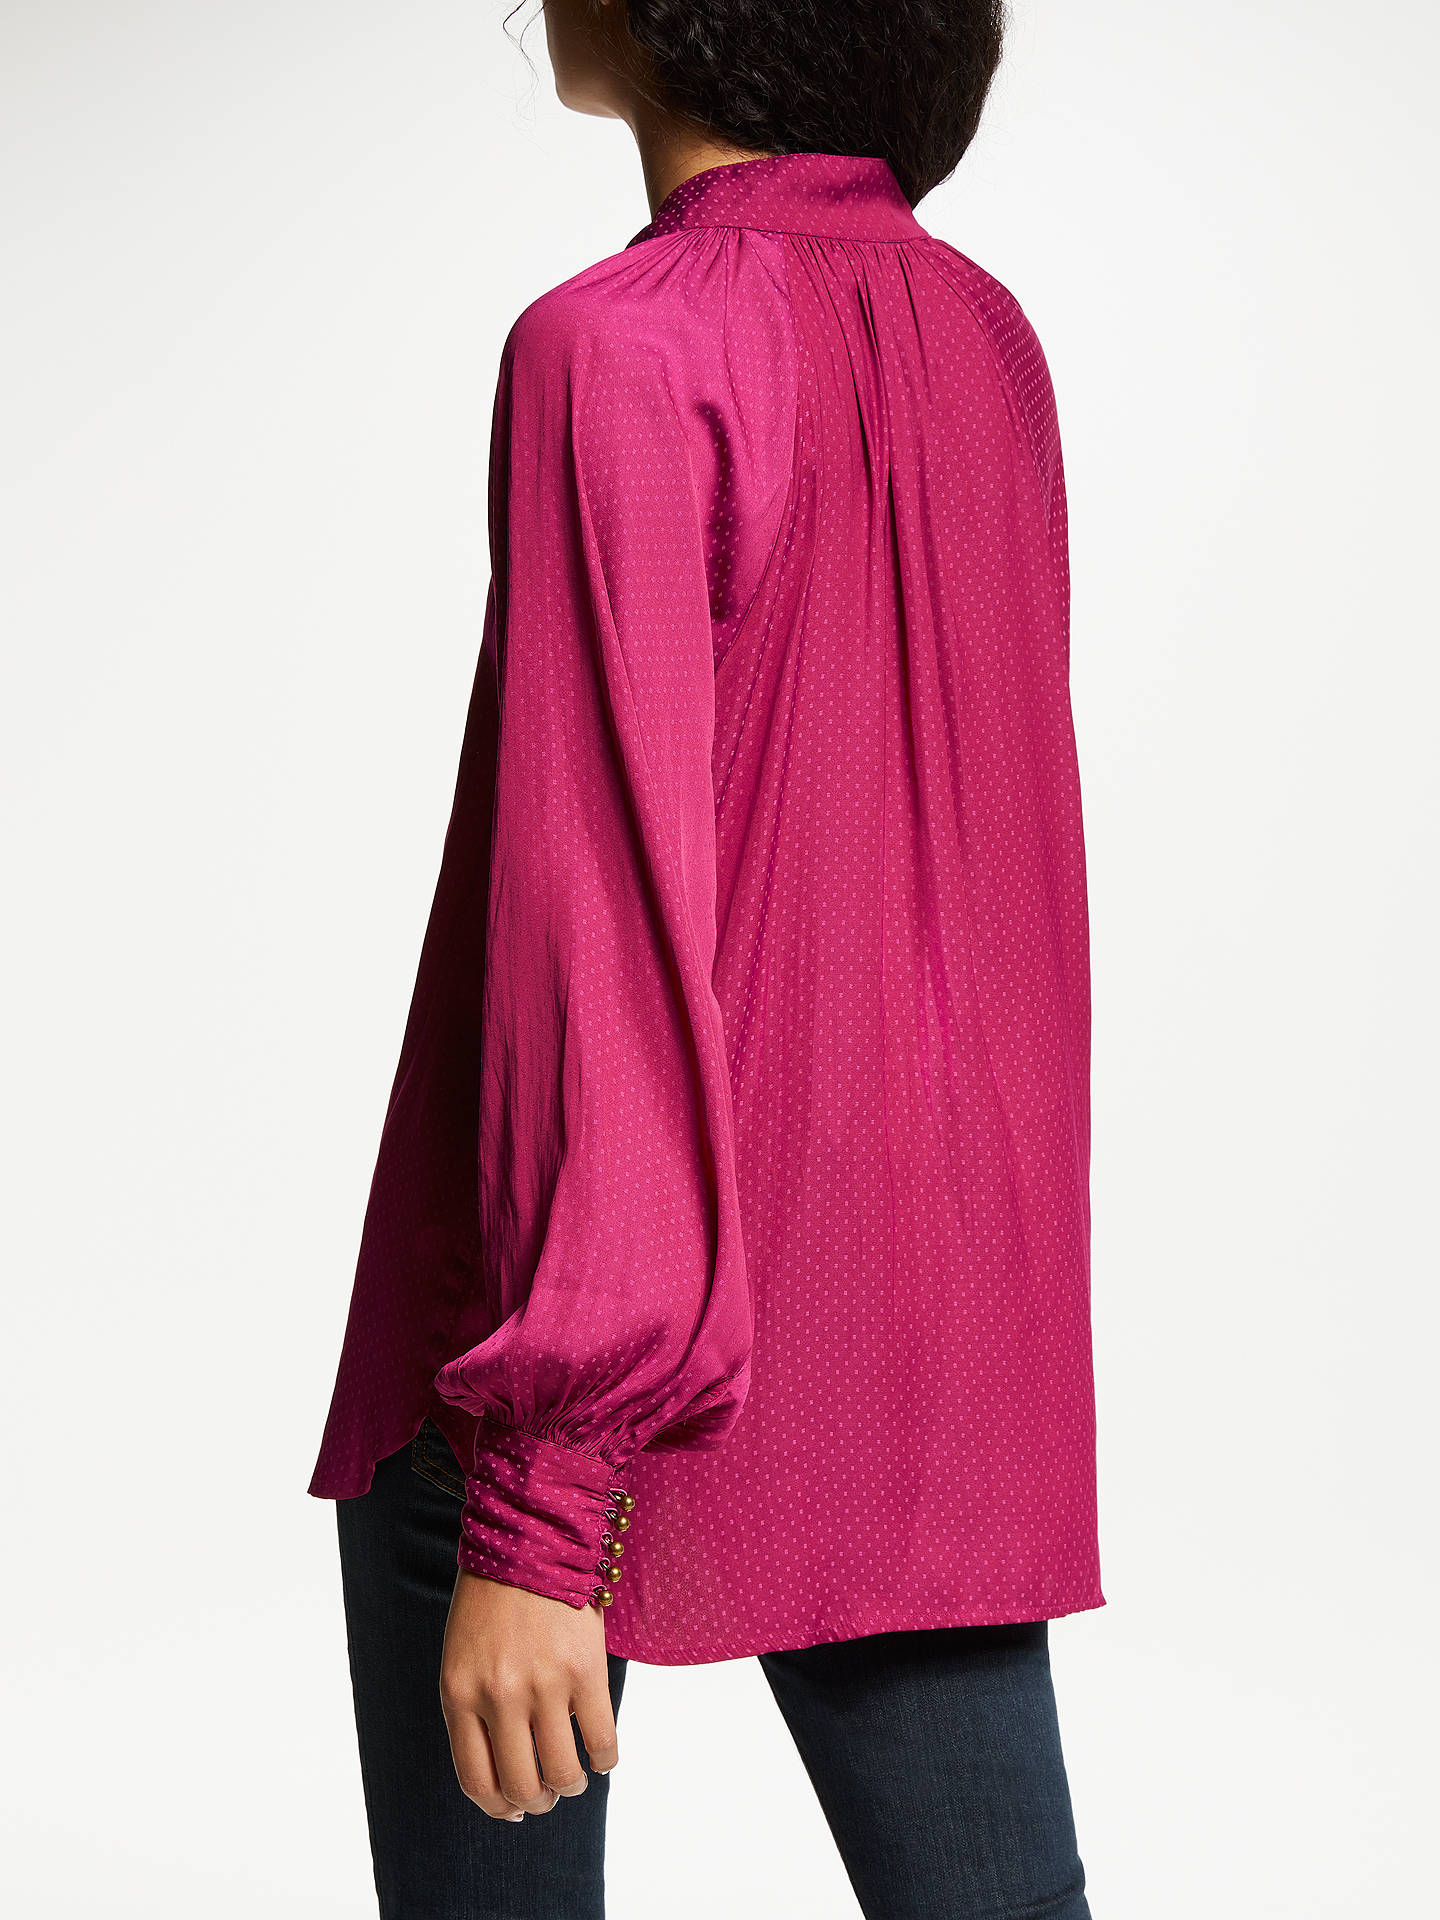 BuyAND/OR Ivy Blouse, Pink, 10 Online at johnlewis.com